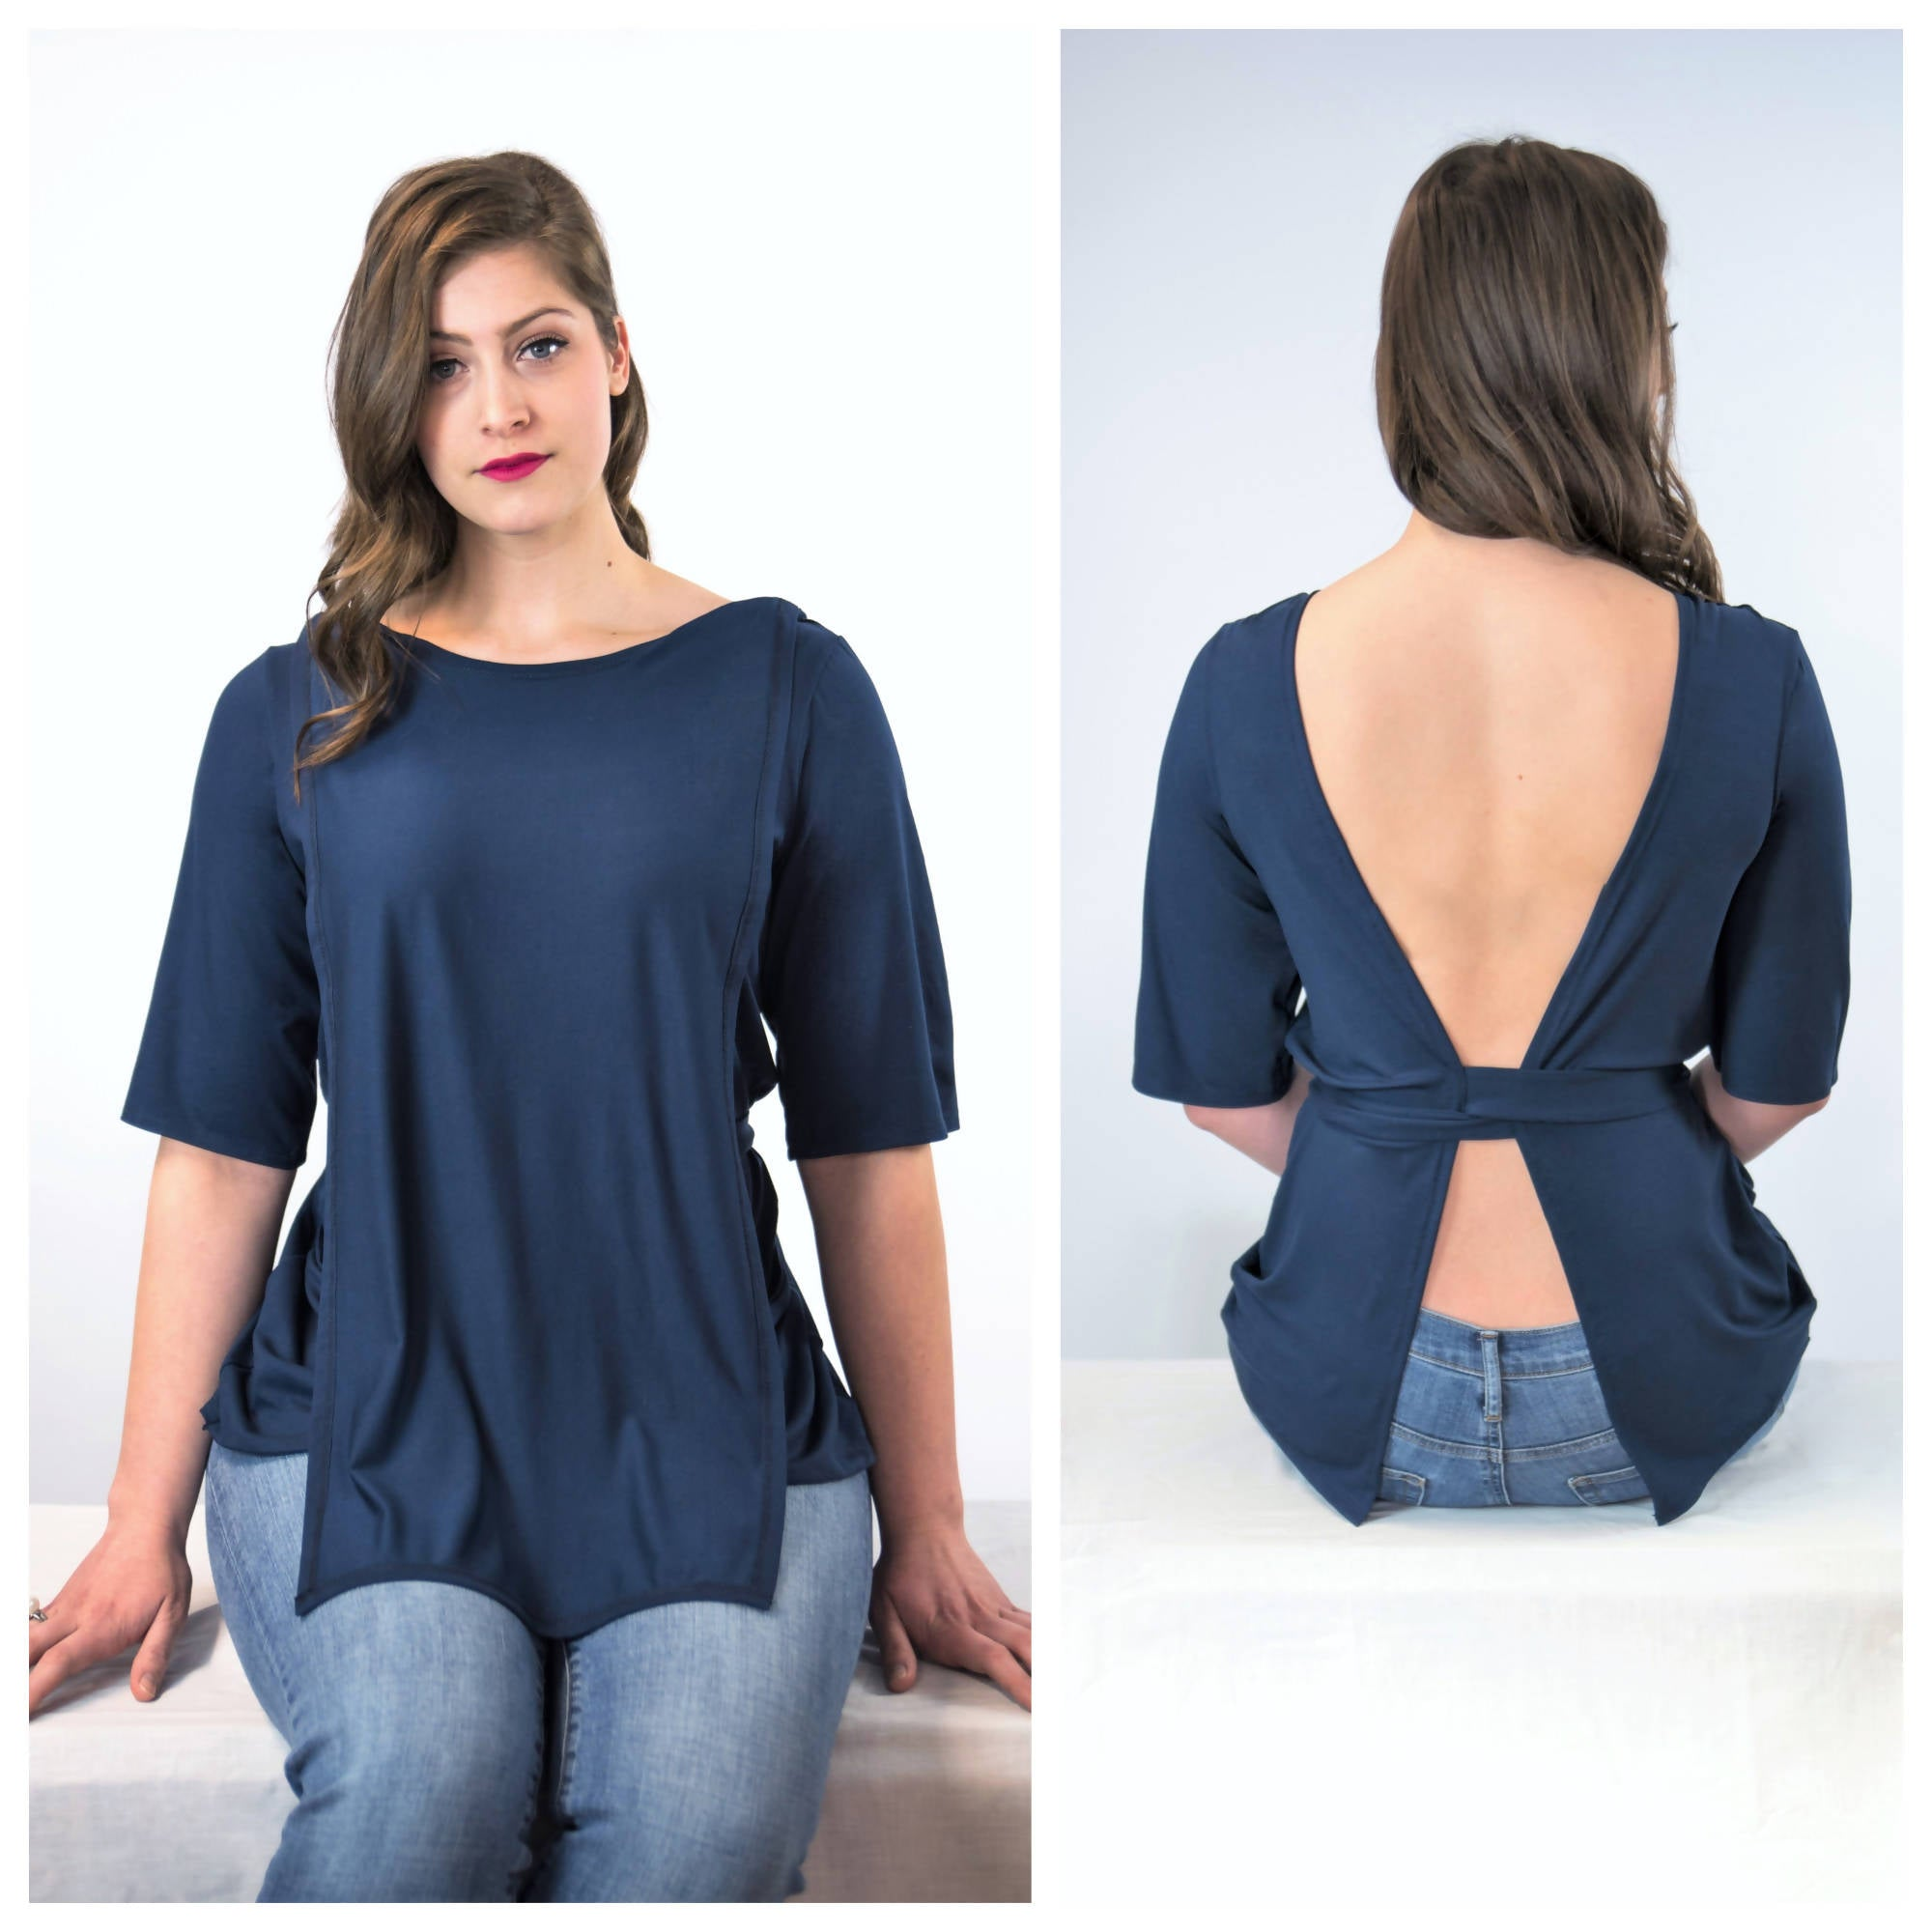 Unisex Bamboo Patient Medical Top for Back Injections/Needles/Treatments That Exposes Your Back